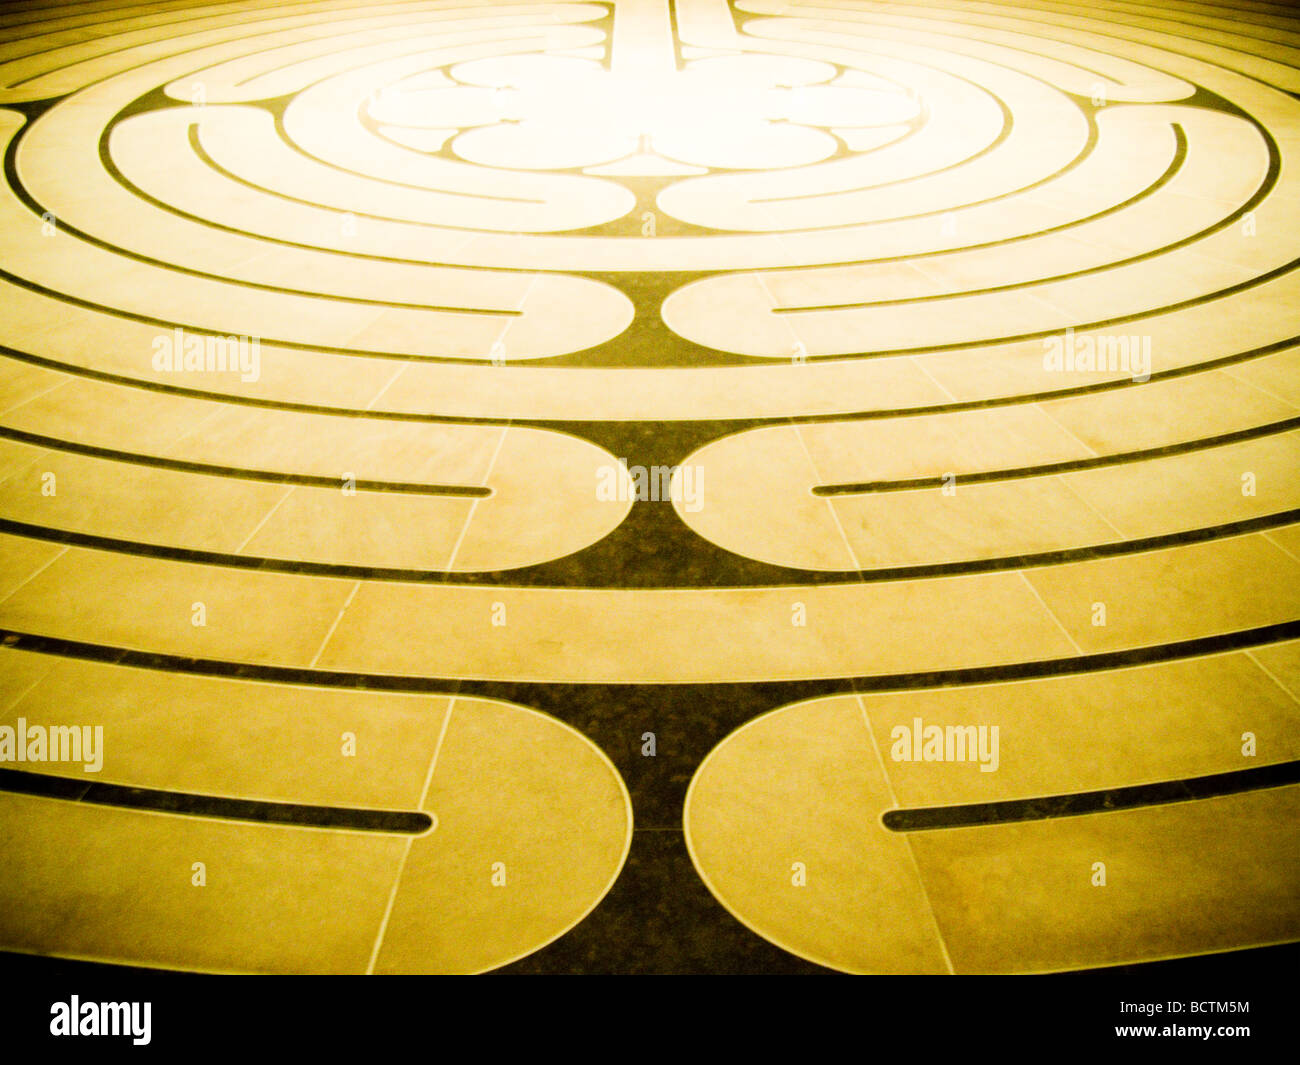 Brown and golden spiral maze floor pattern - Stock Image